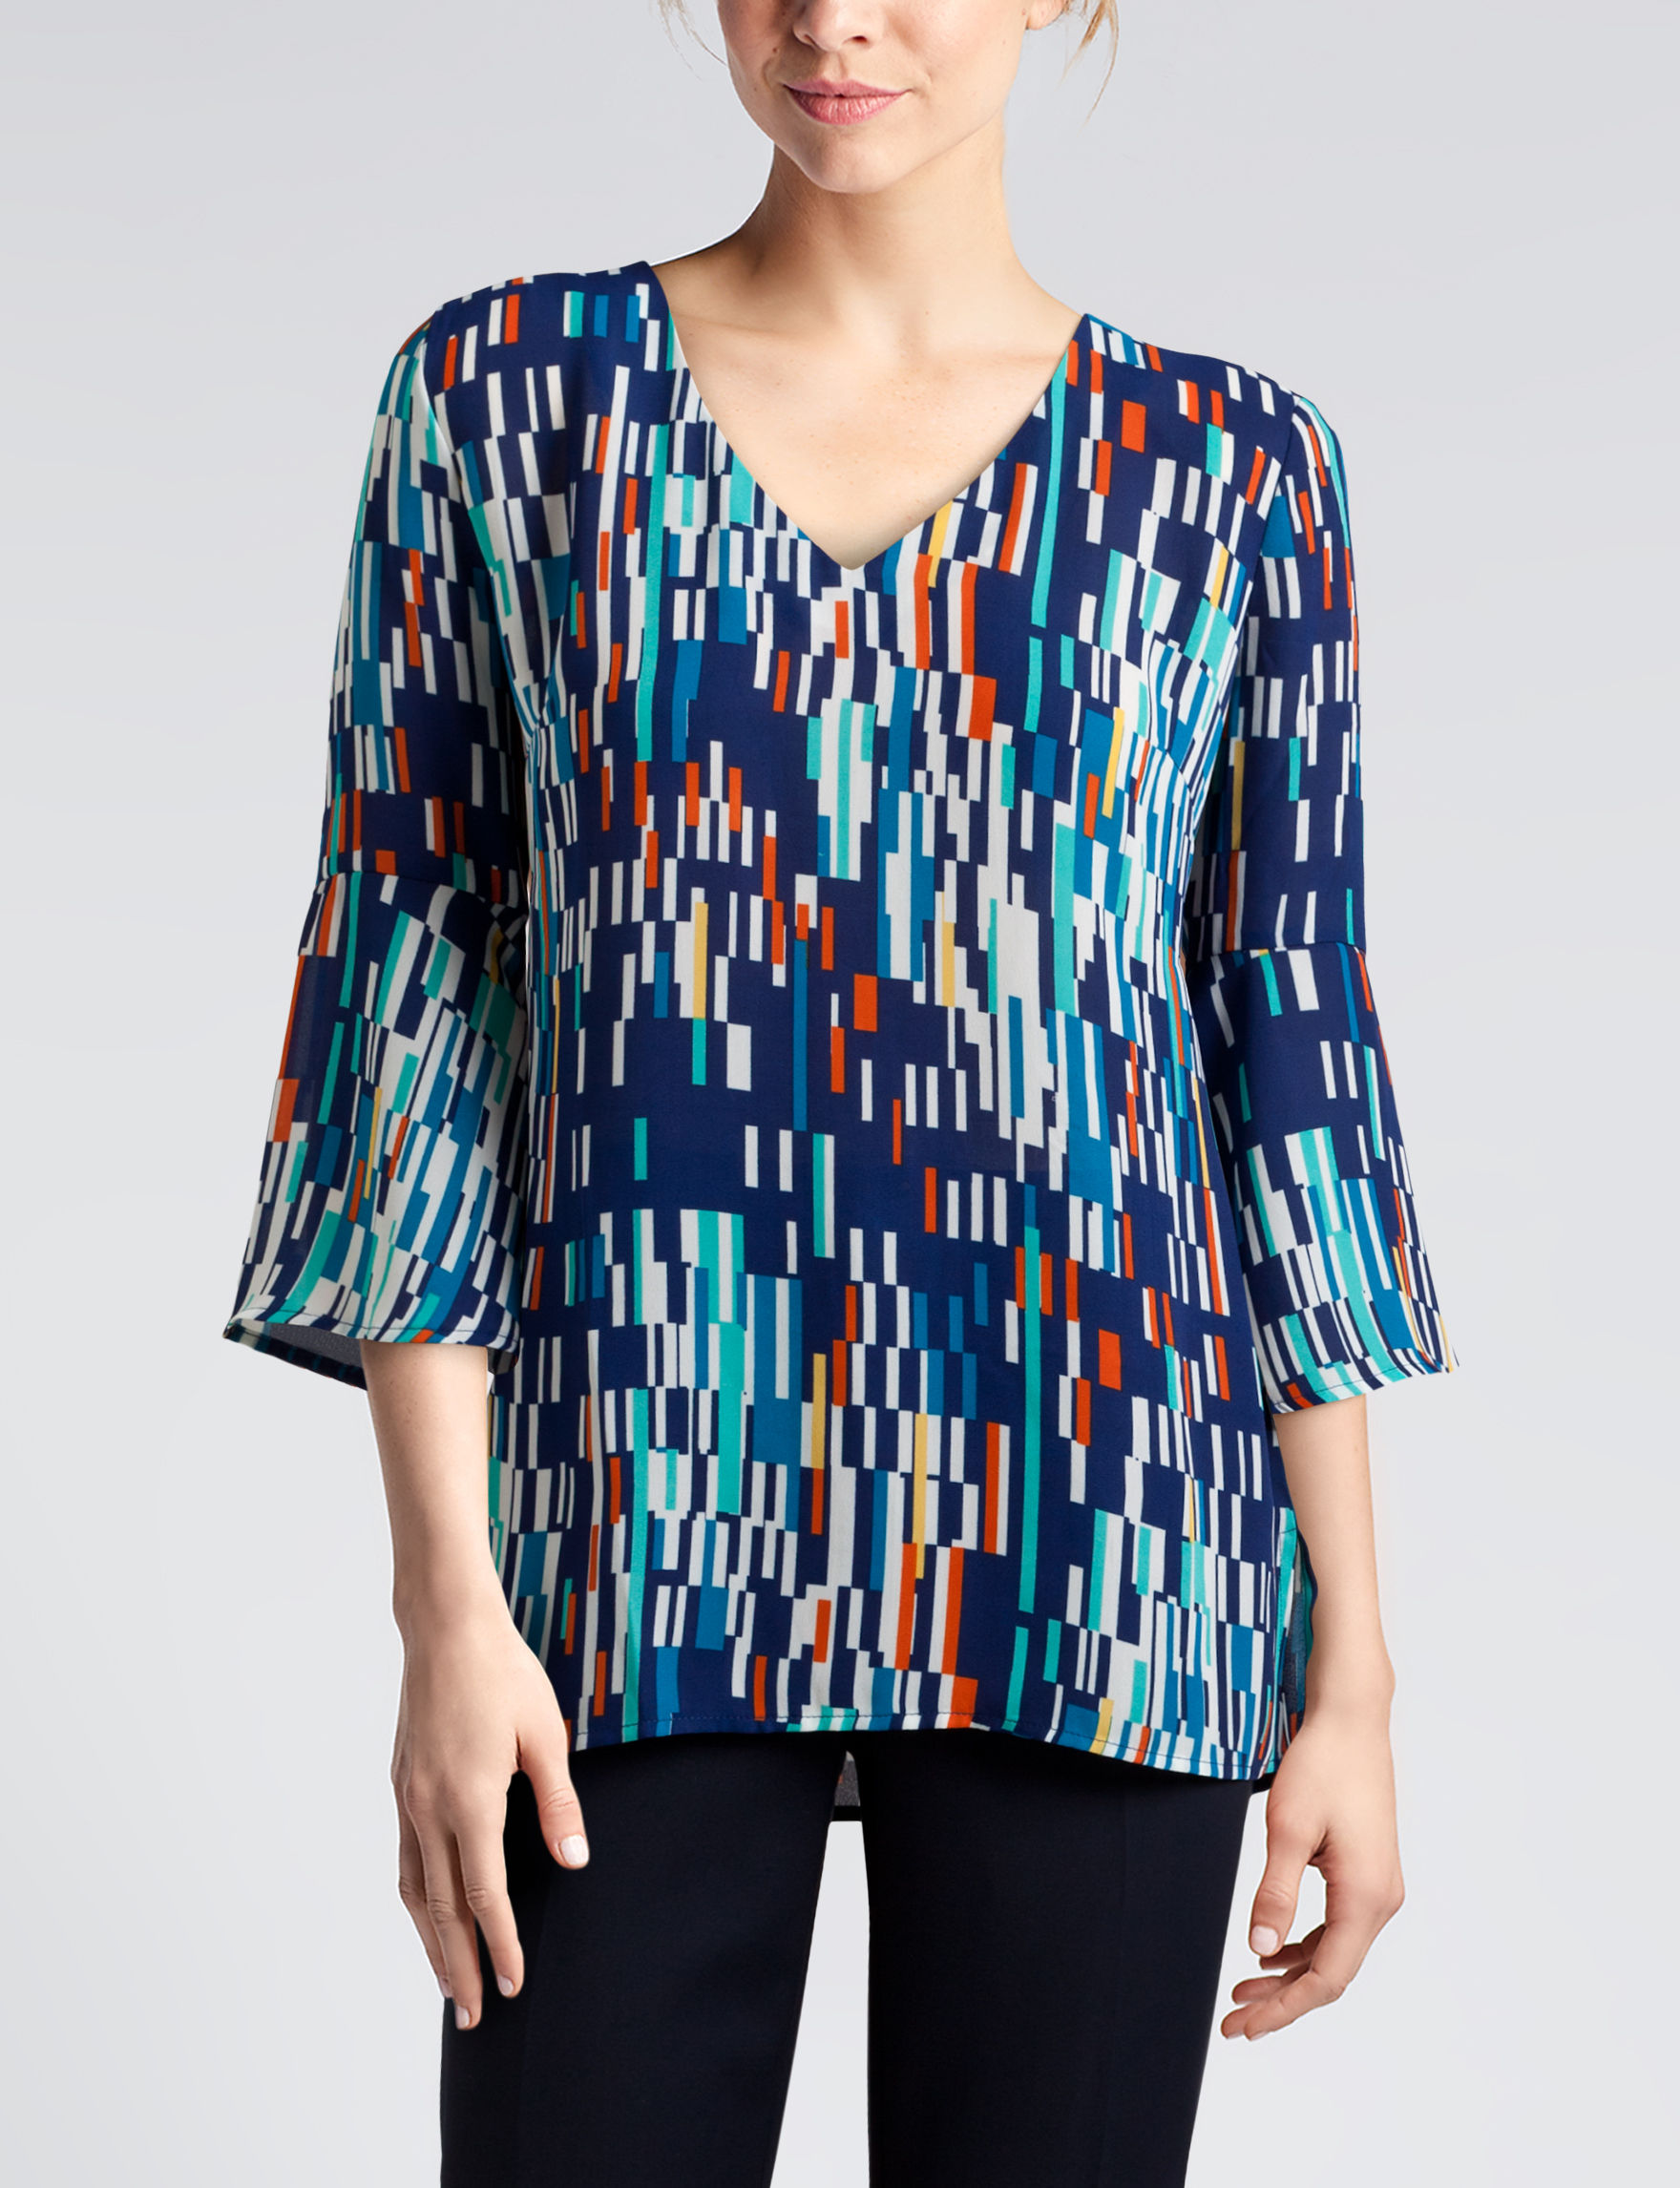 Sunny Leigh Blue Multi Shirts & Blouses